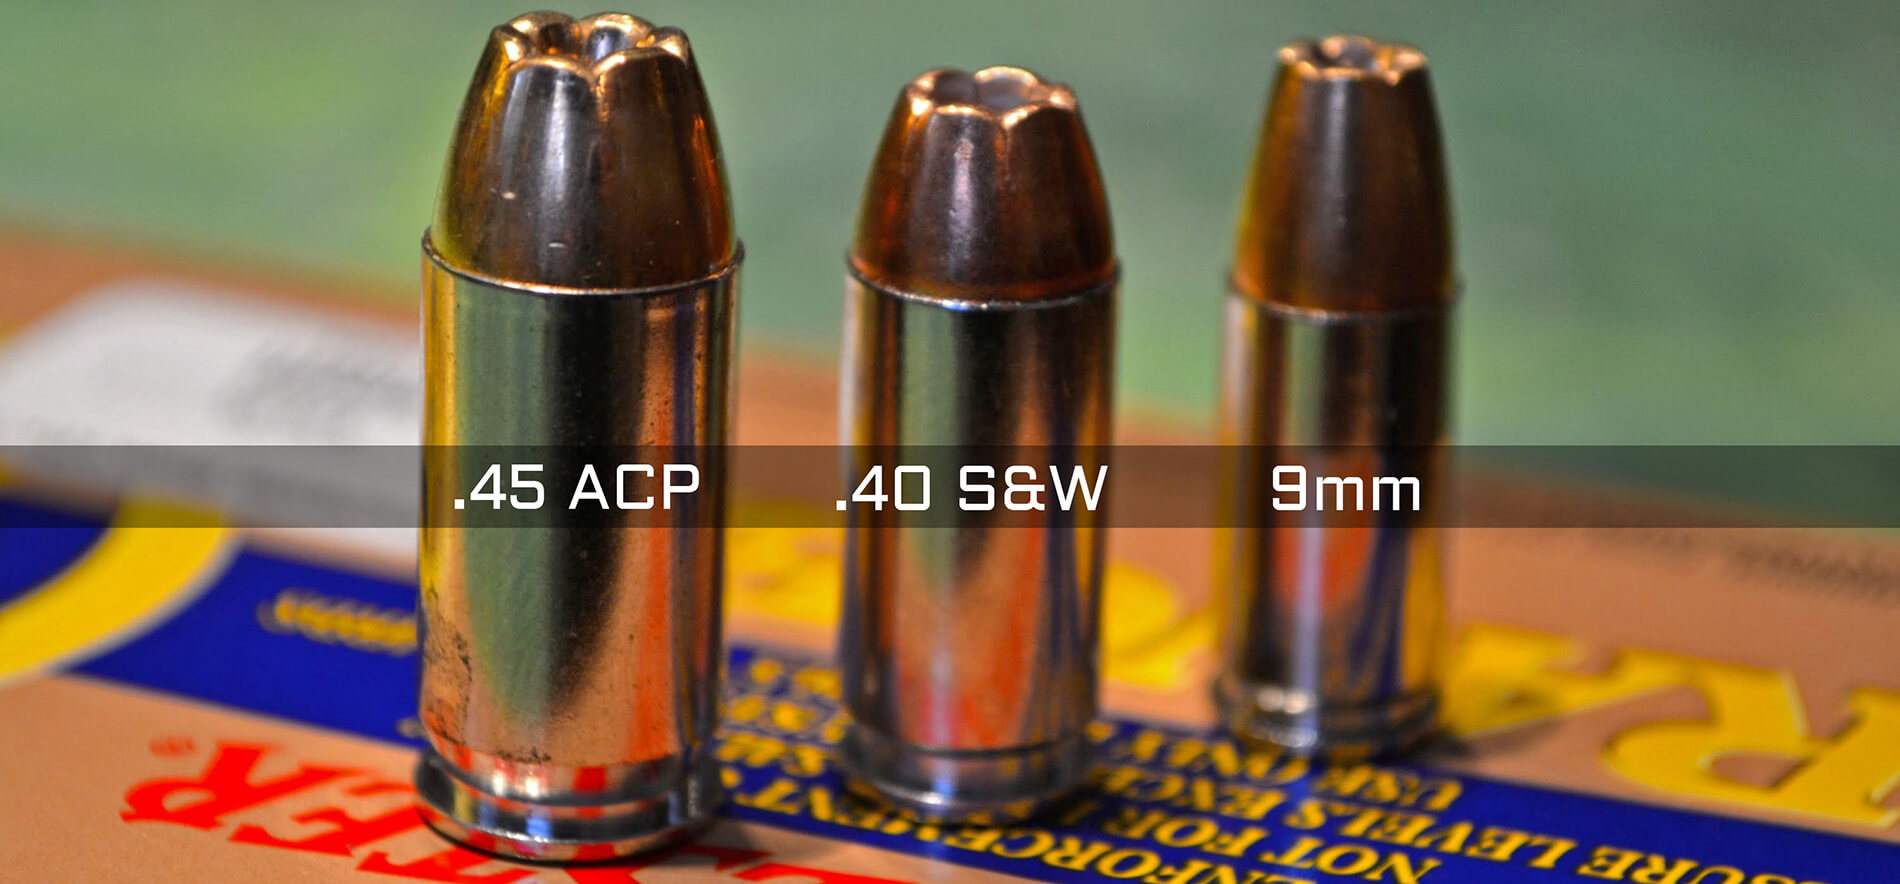 9mm vs .40 vs .45 ACP ammo